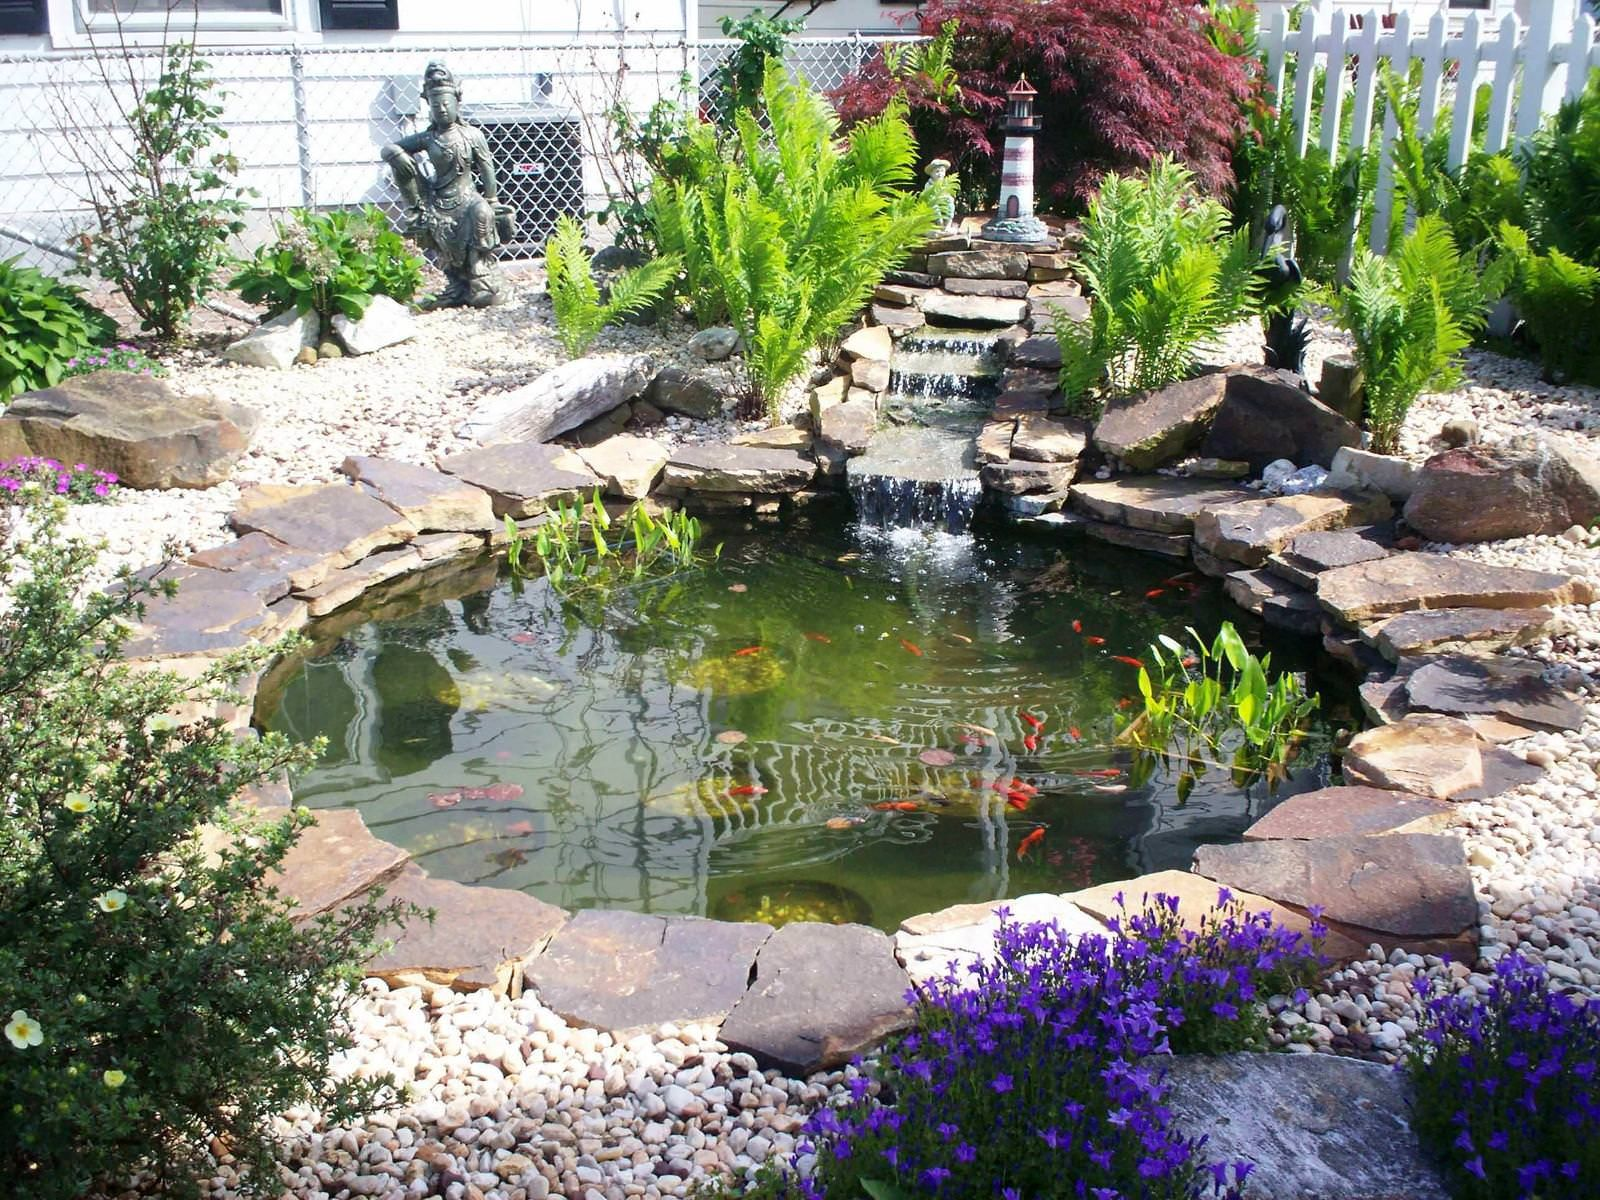 Small garden or backyard aquarium ideas practic ideas for Garden with a pond